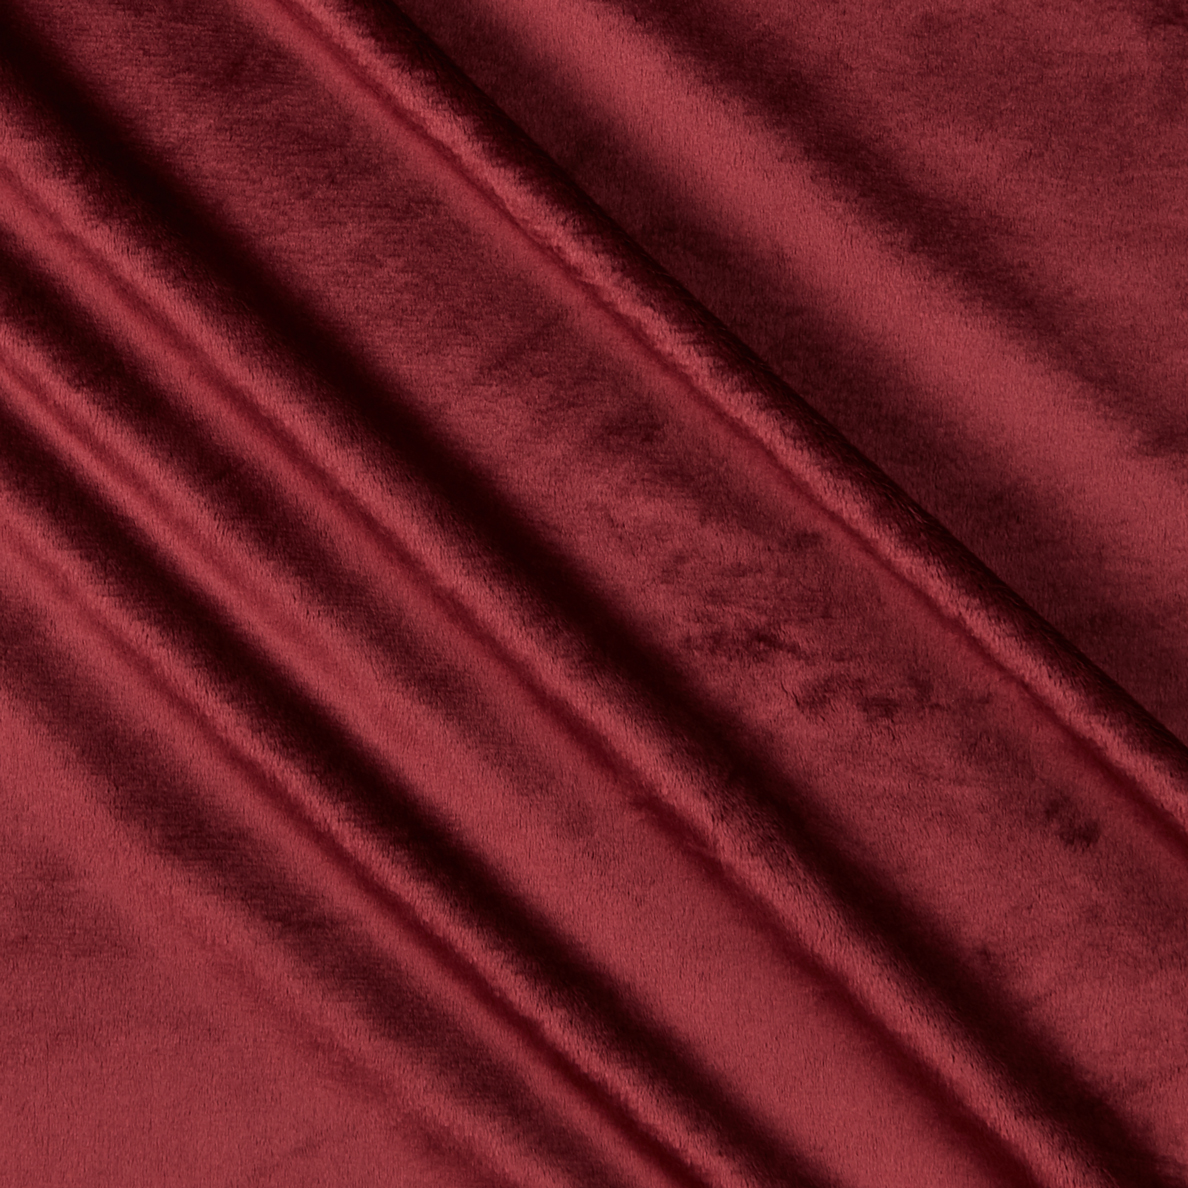 Shannon Minky Cuddle 3 Merlot Fabric by Shannon in USA